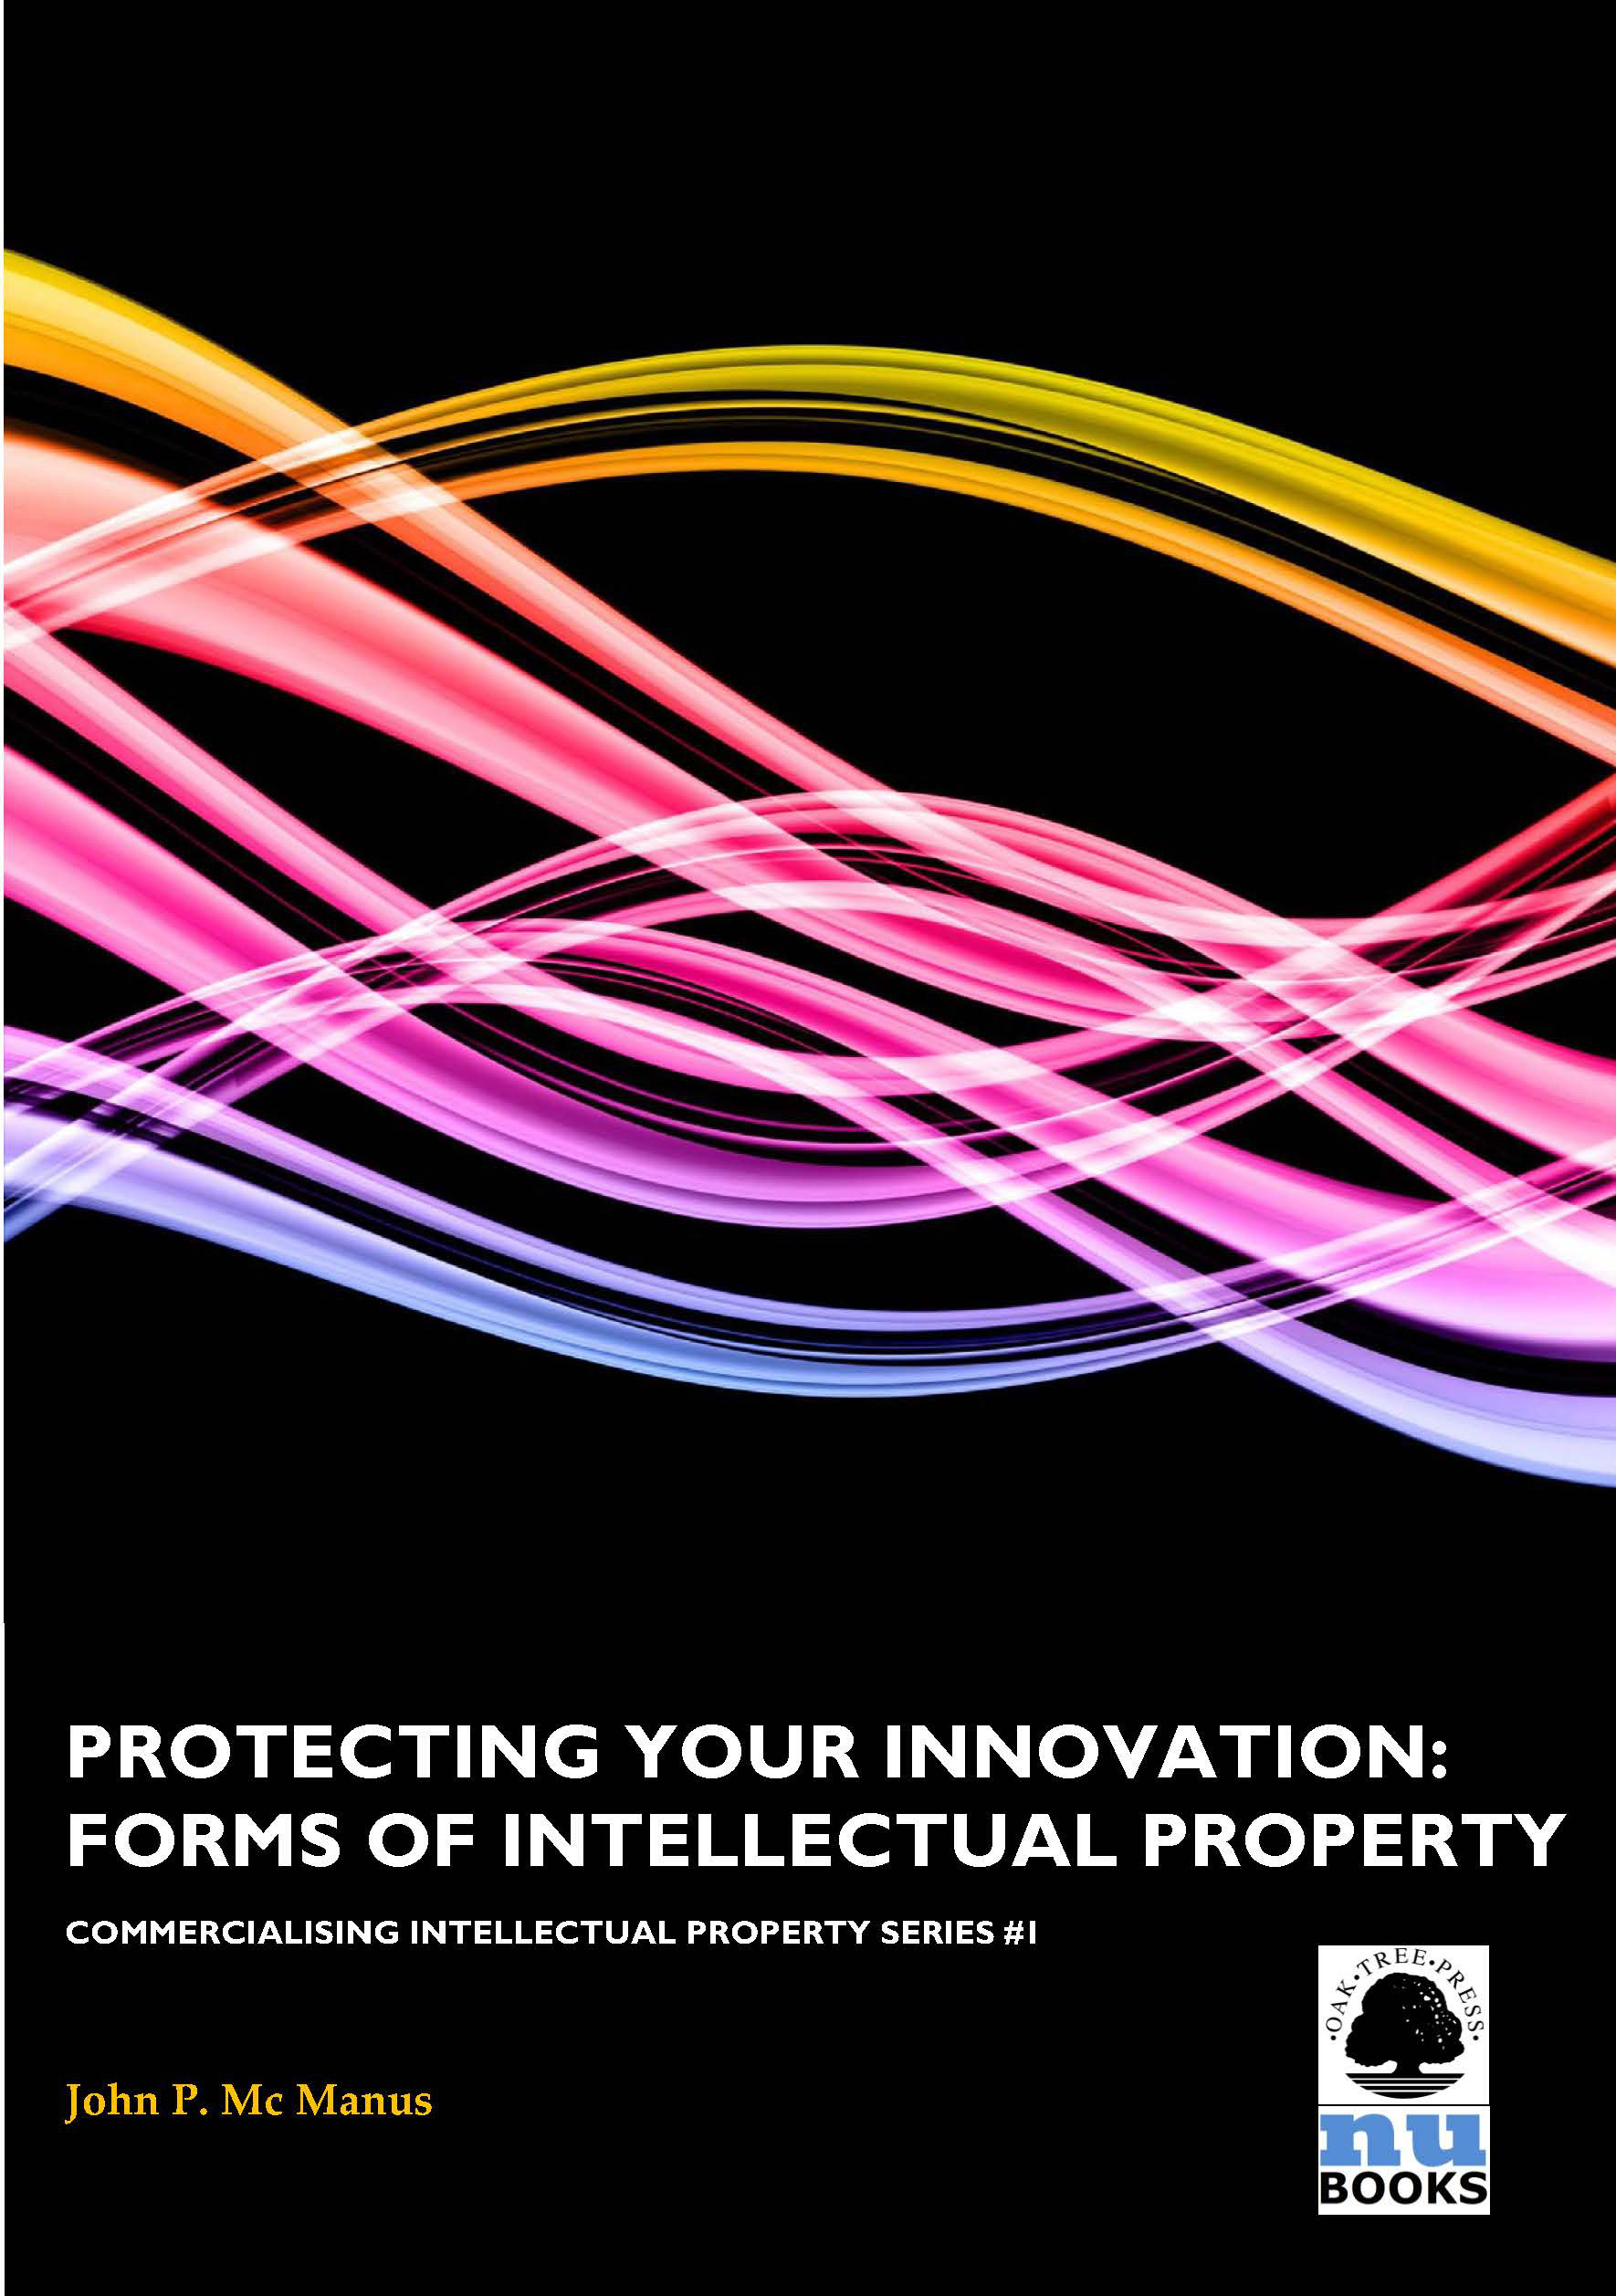 Protecting Your Innovation: Forms of Intellectual Property